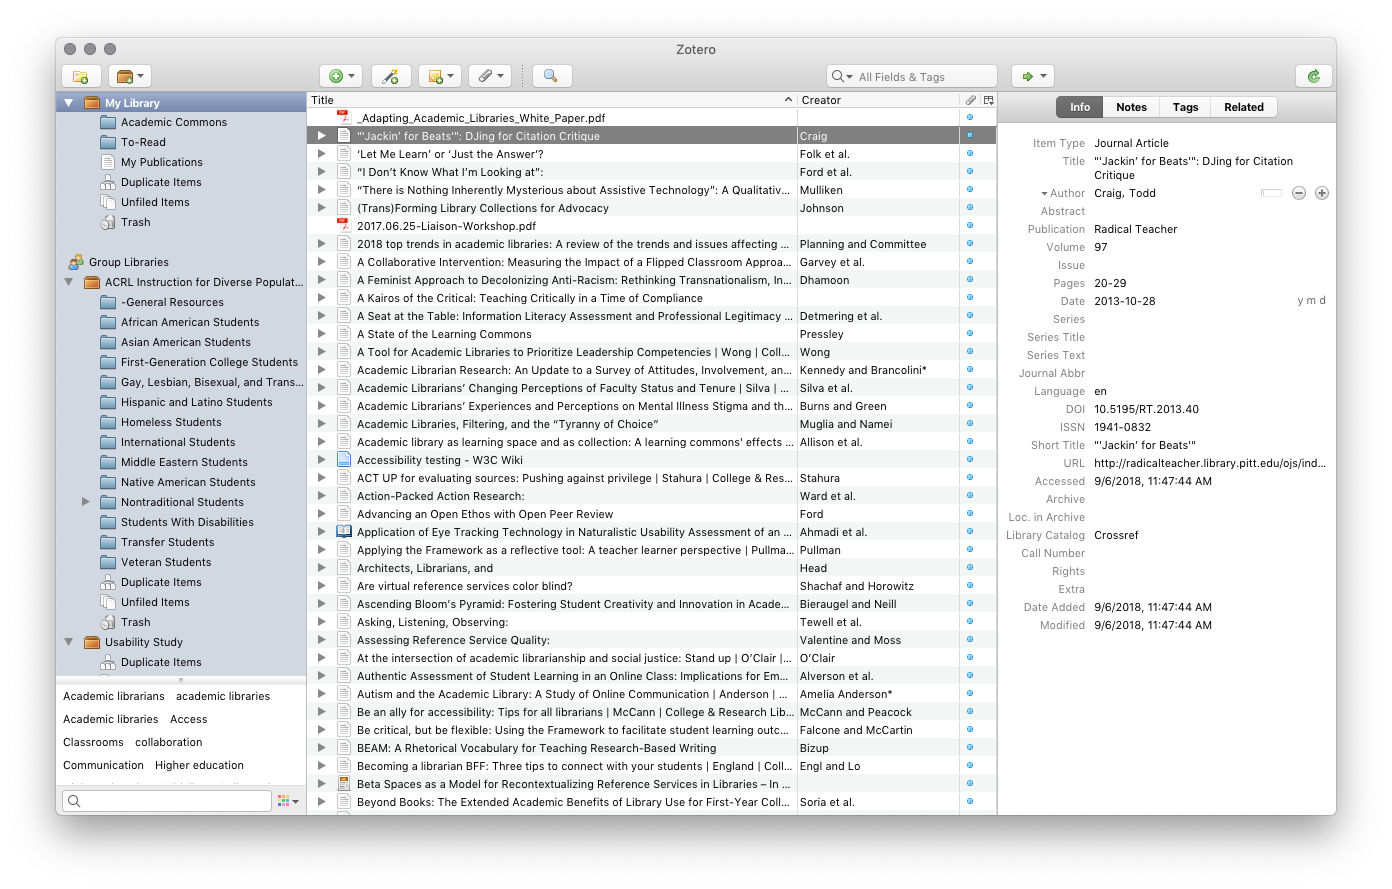 A screenshot of the main window of Zotero